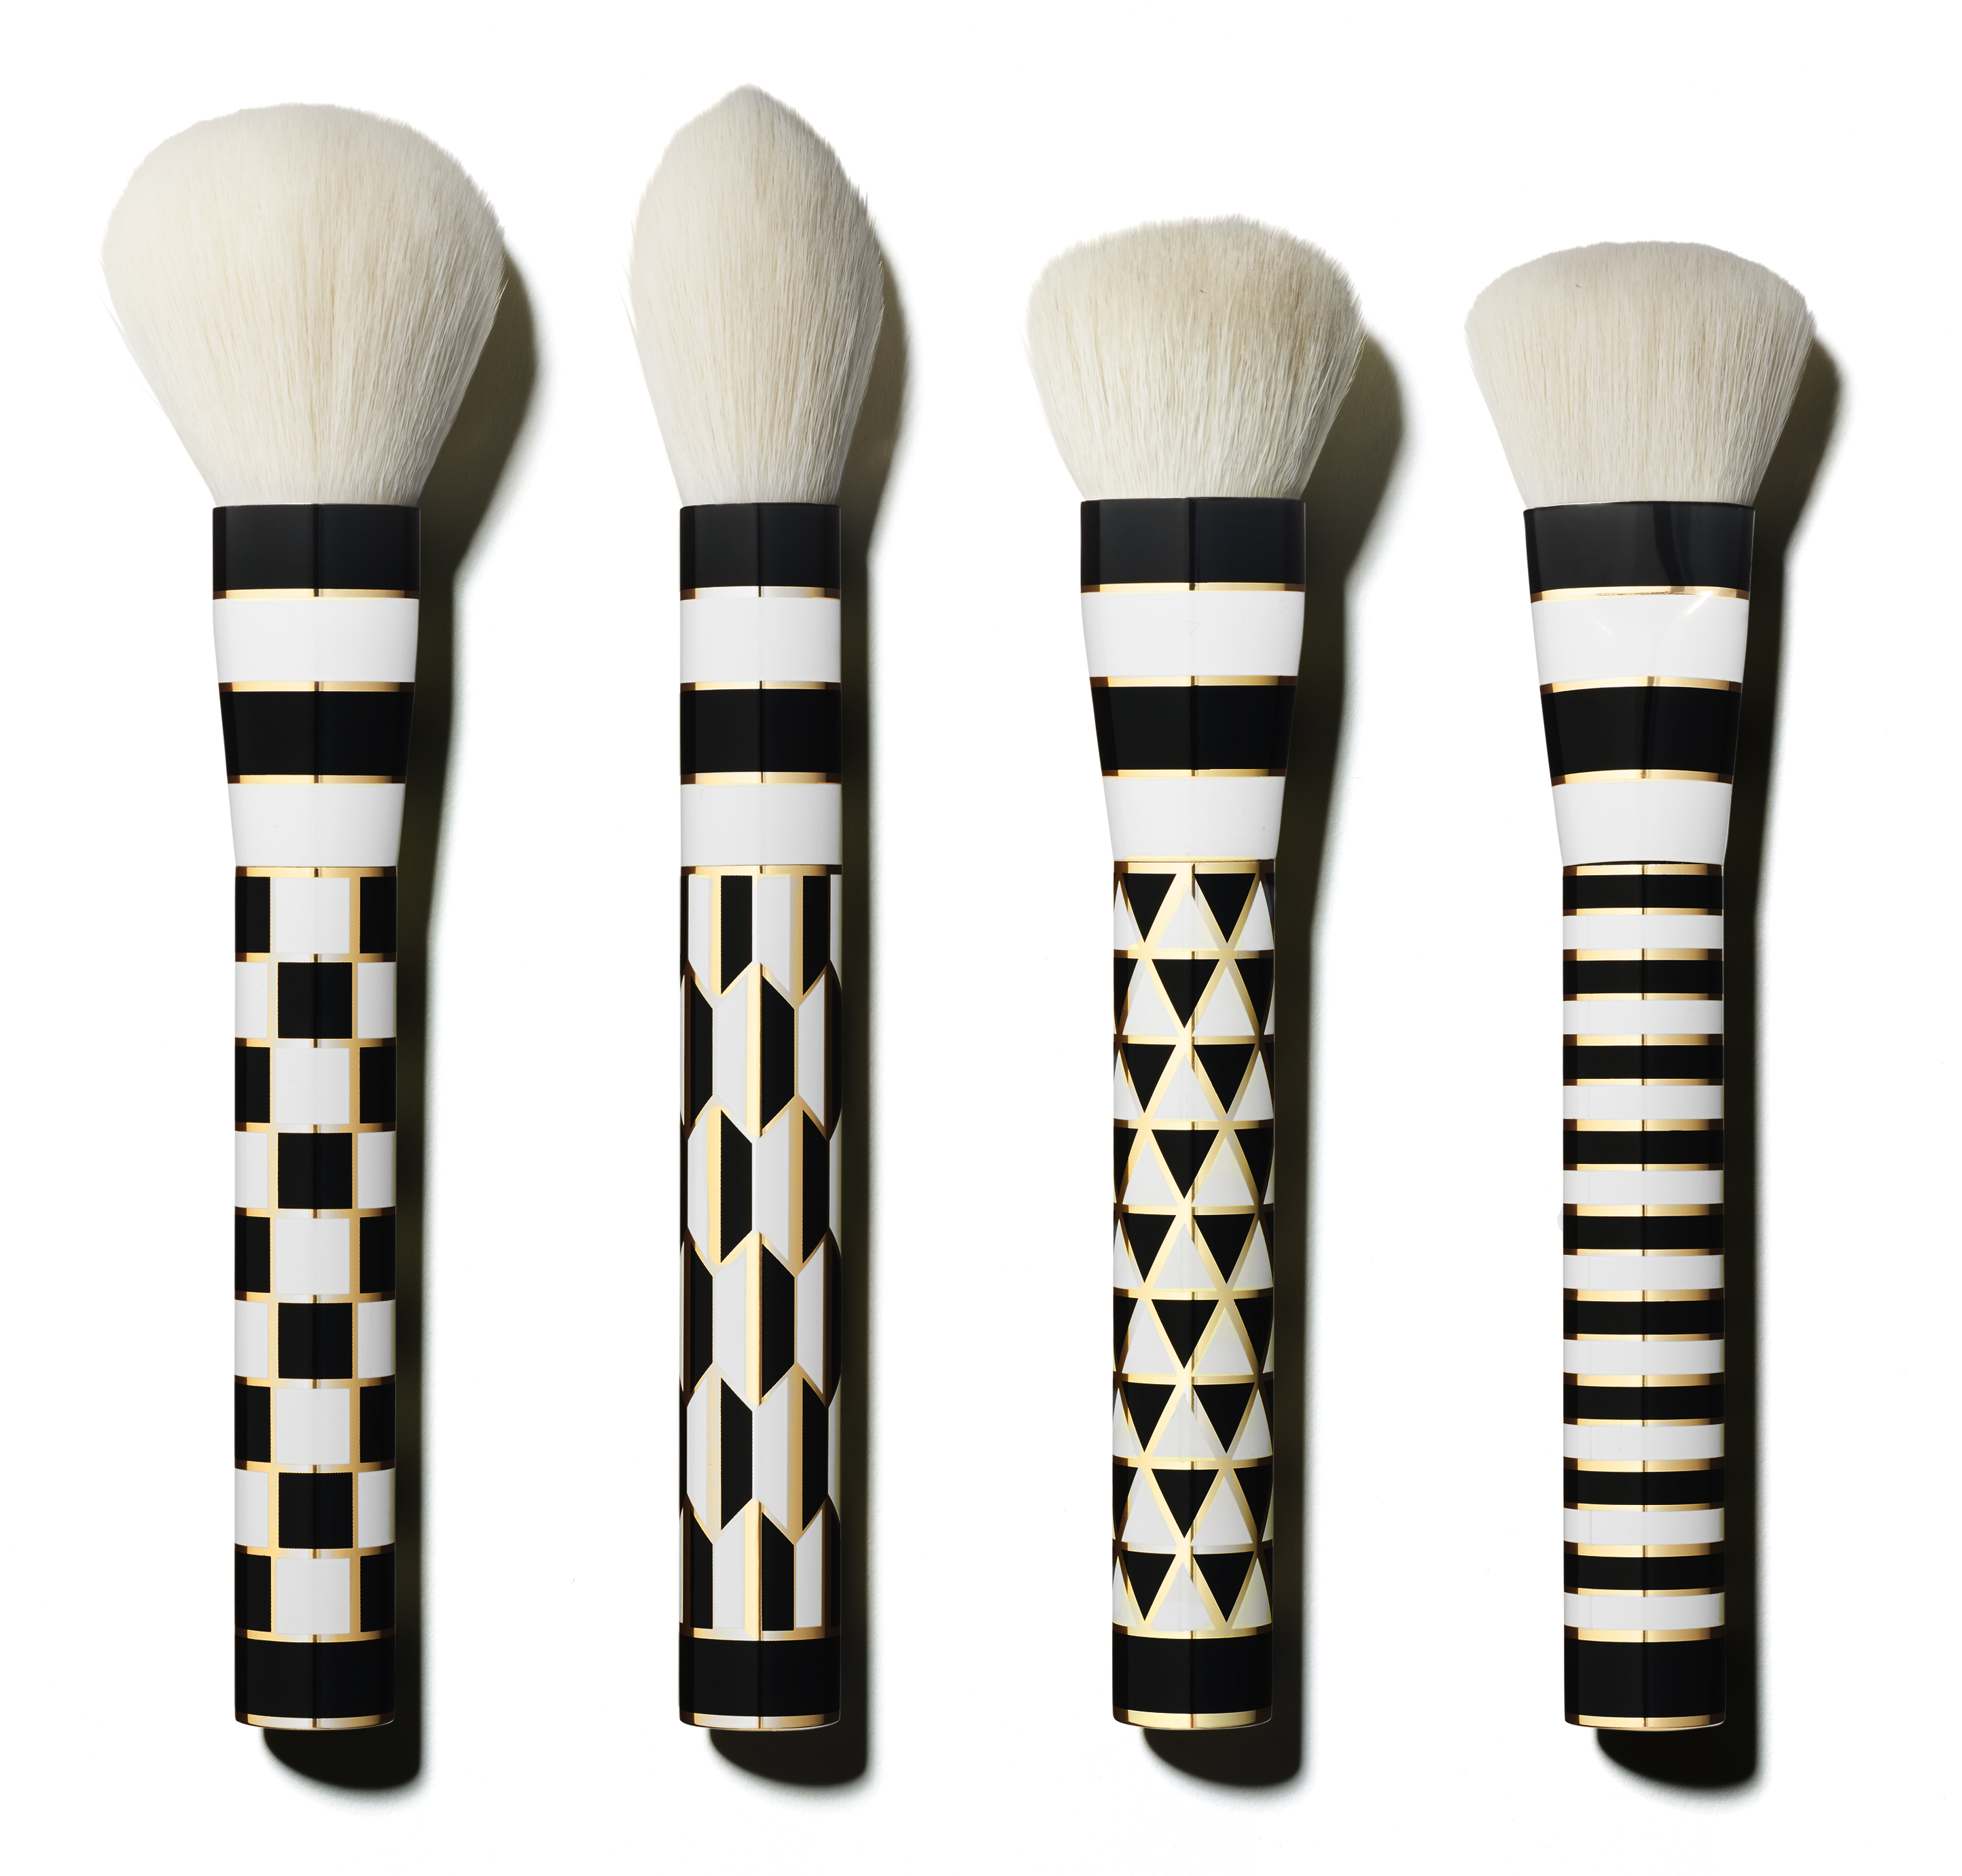 Sonia Kashuk The Geometrics Four-Piece Brush Set